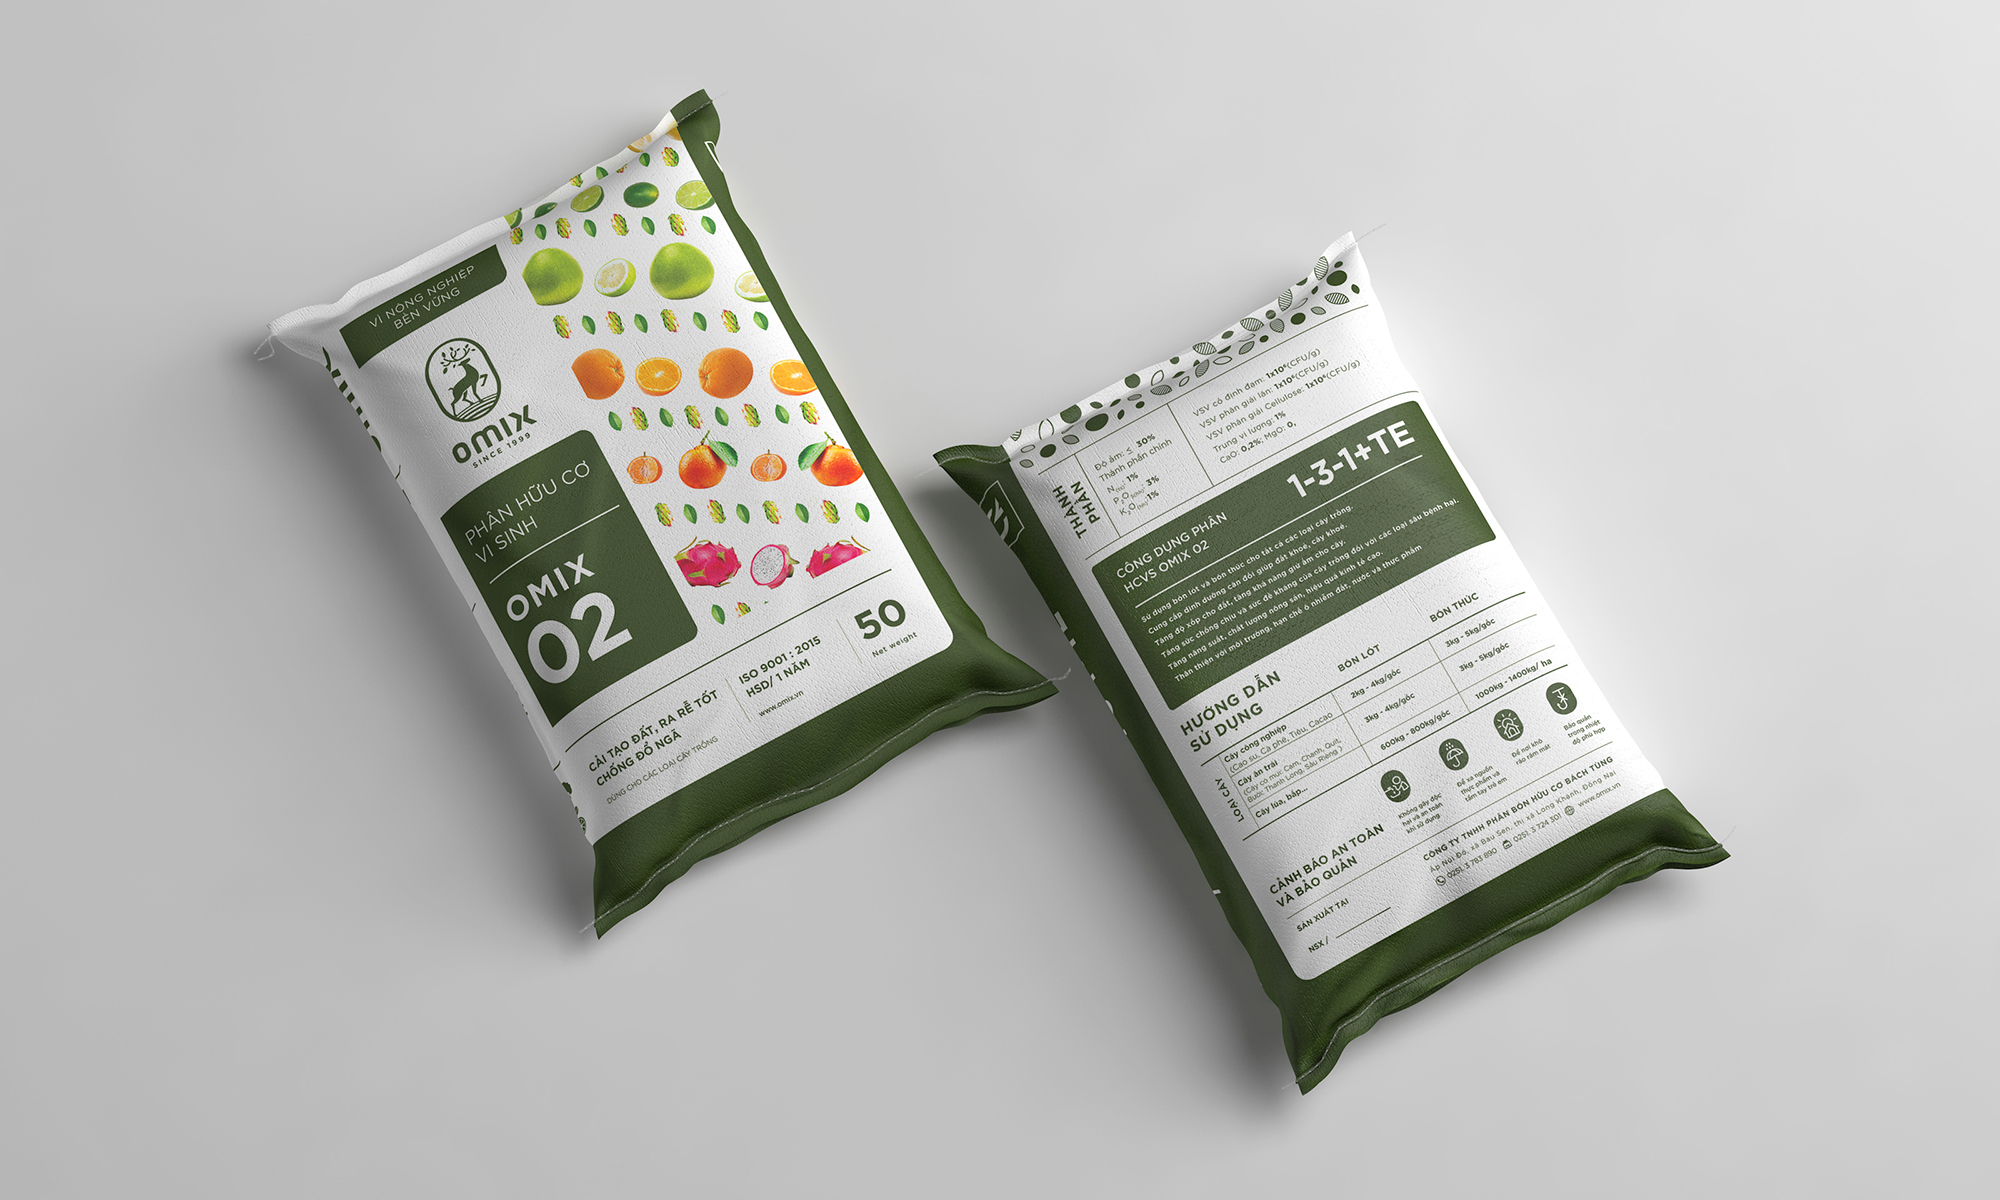 rgb_creative_ideas_design_packaging_bratus_omix_09